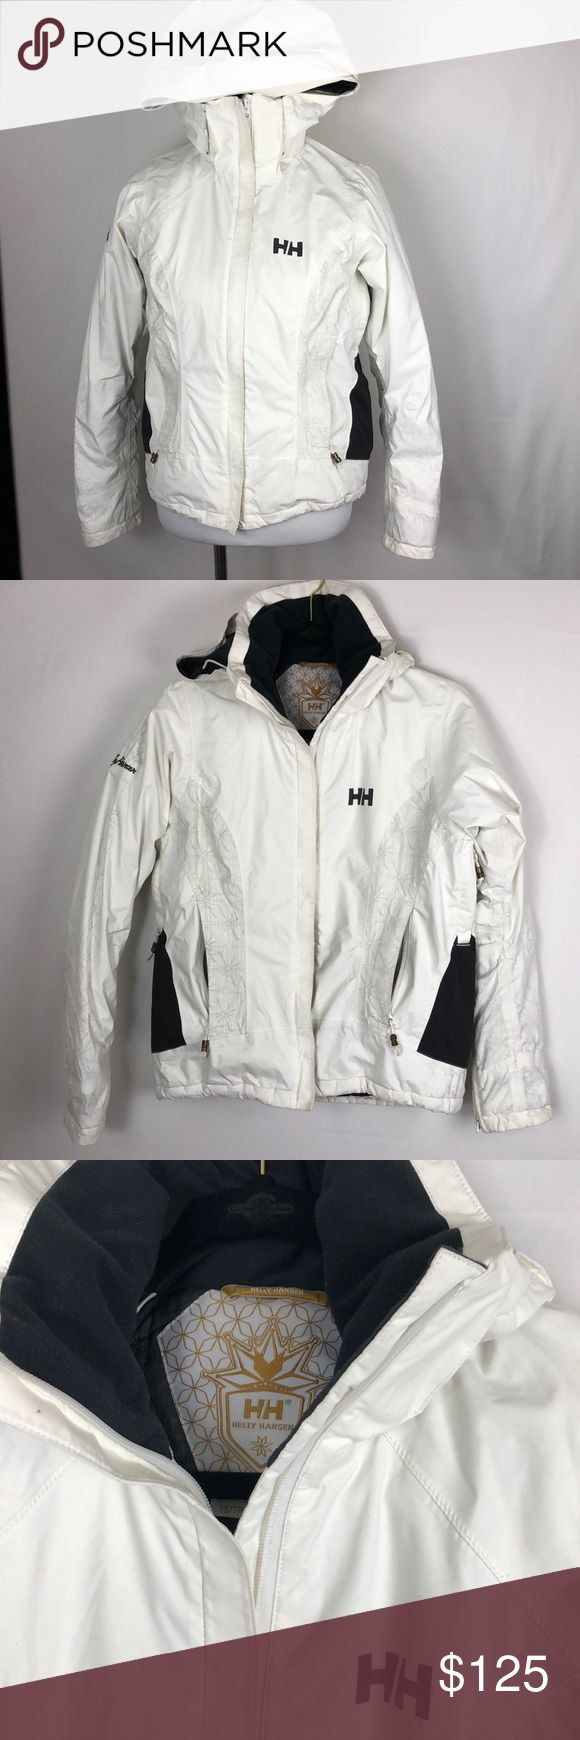 Helly Hansen white ski coat Helly Hansen white ski coat with sunburst accents and gold zipper and button details. Excellent used condition! Measurements Pit to Pit 20 inches Length 24 inches Helly Hansen Jackets & Coats